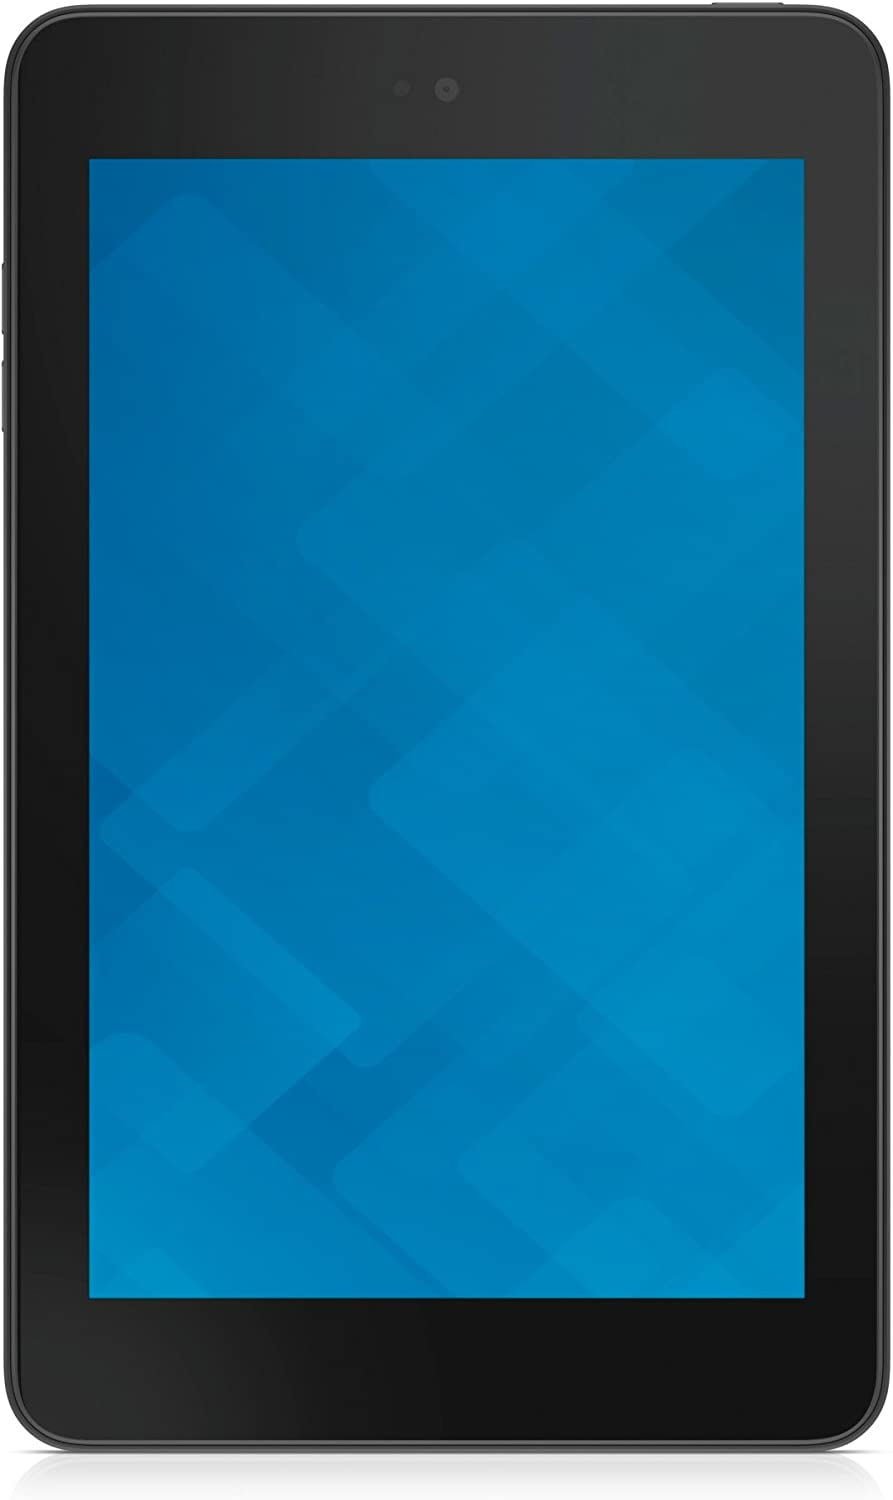 Dell Venue 7 v7TBL-1667BLK 16GB Android Tablet